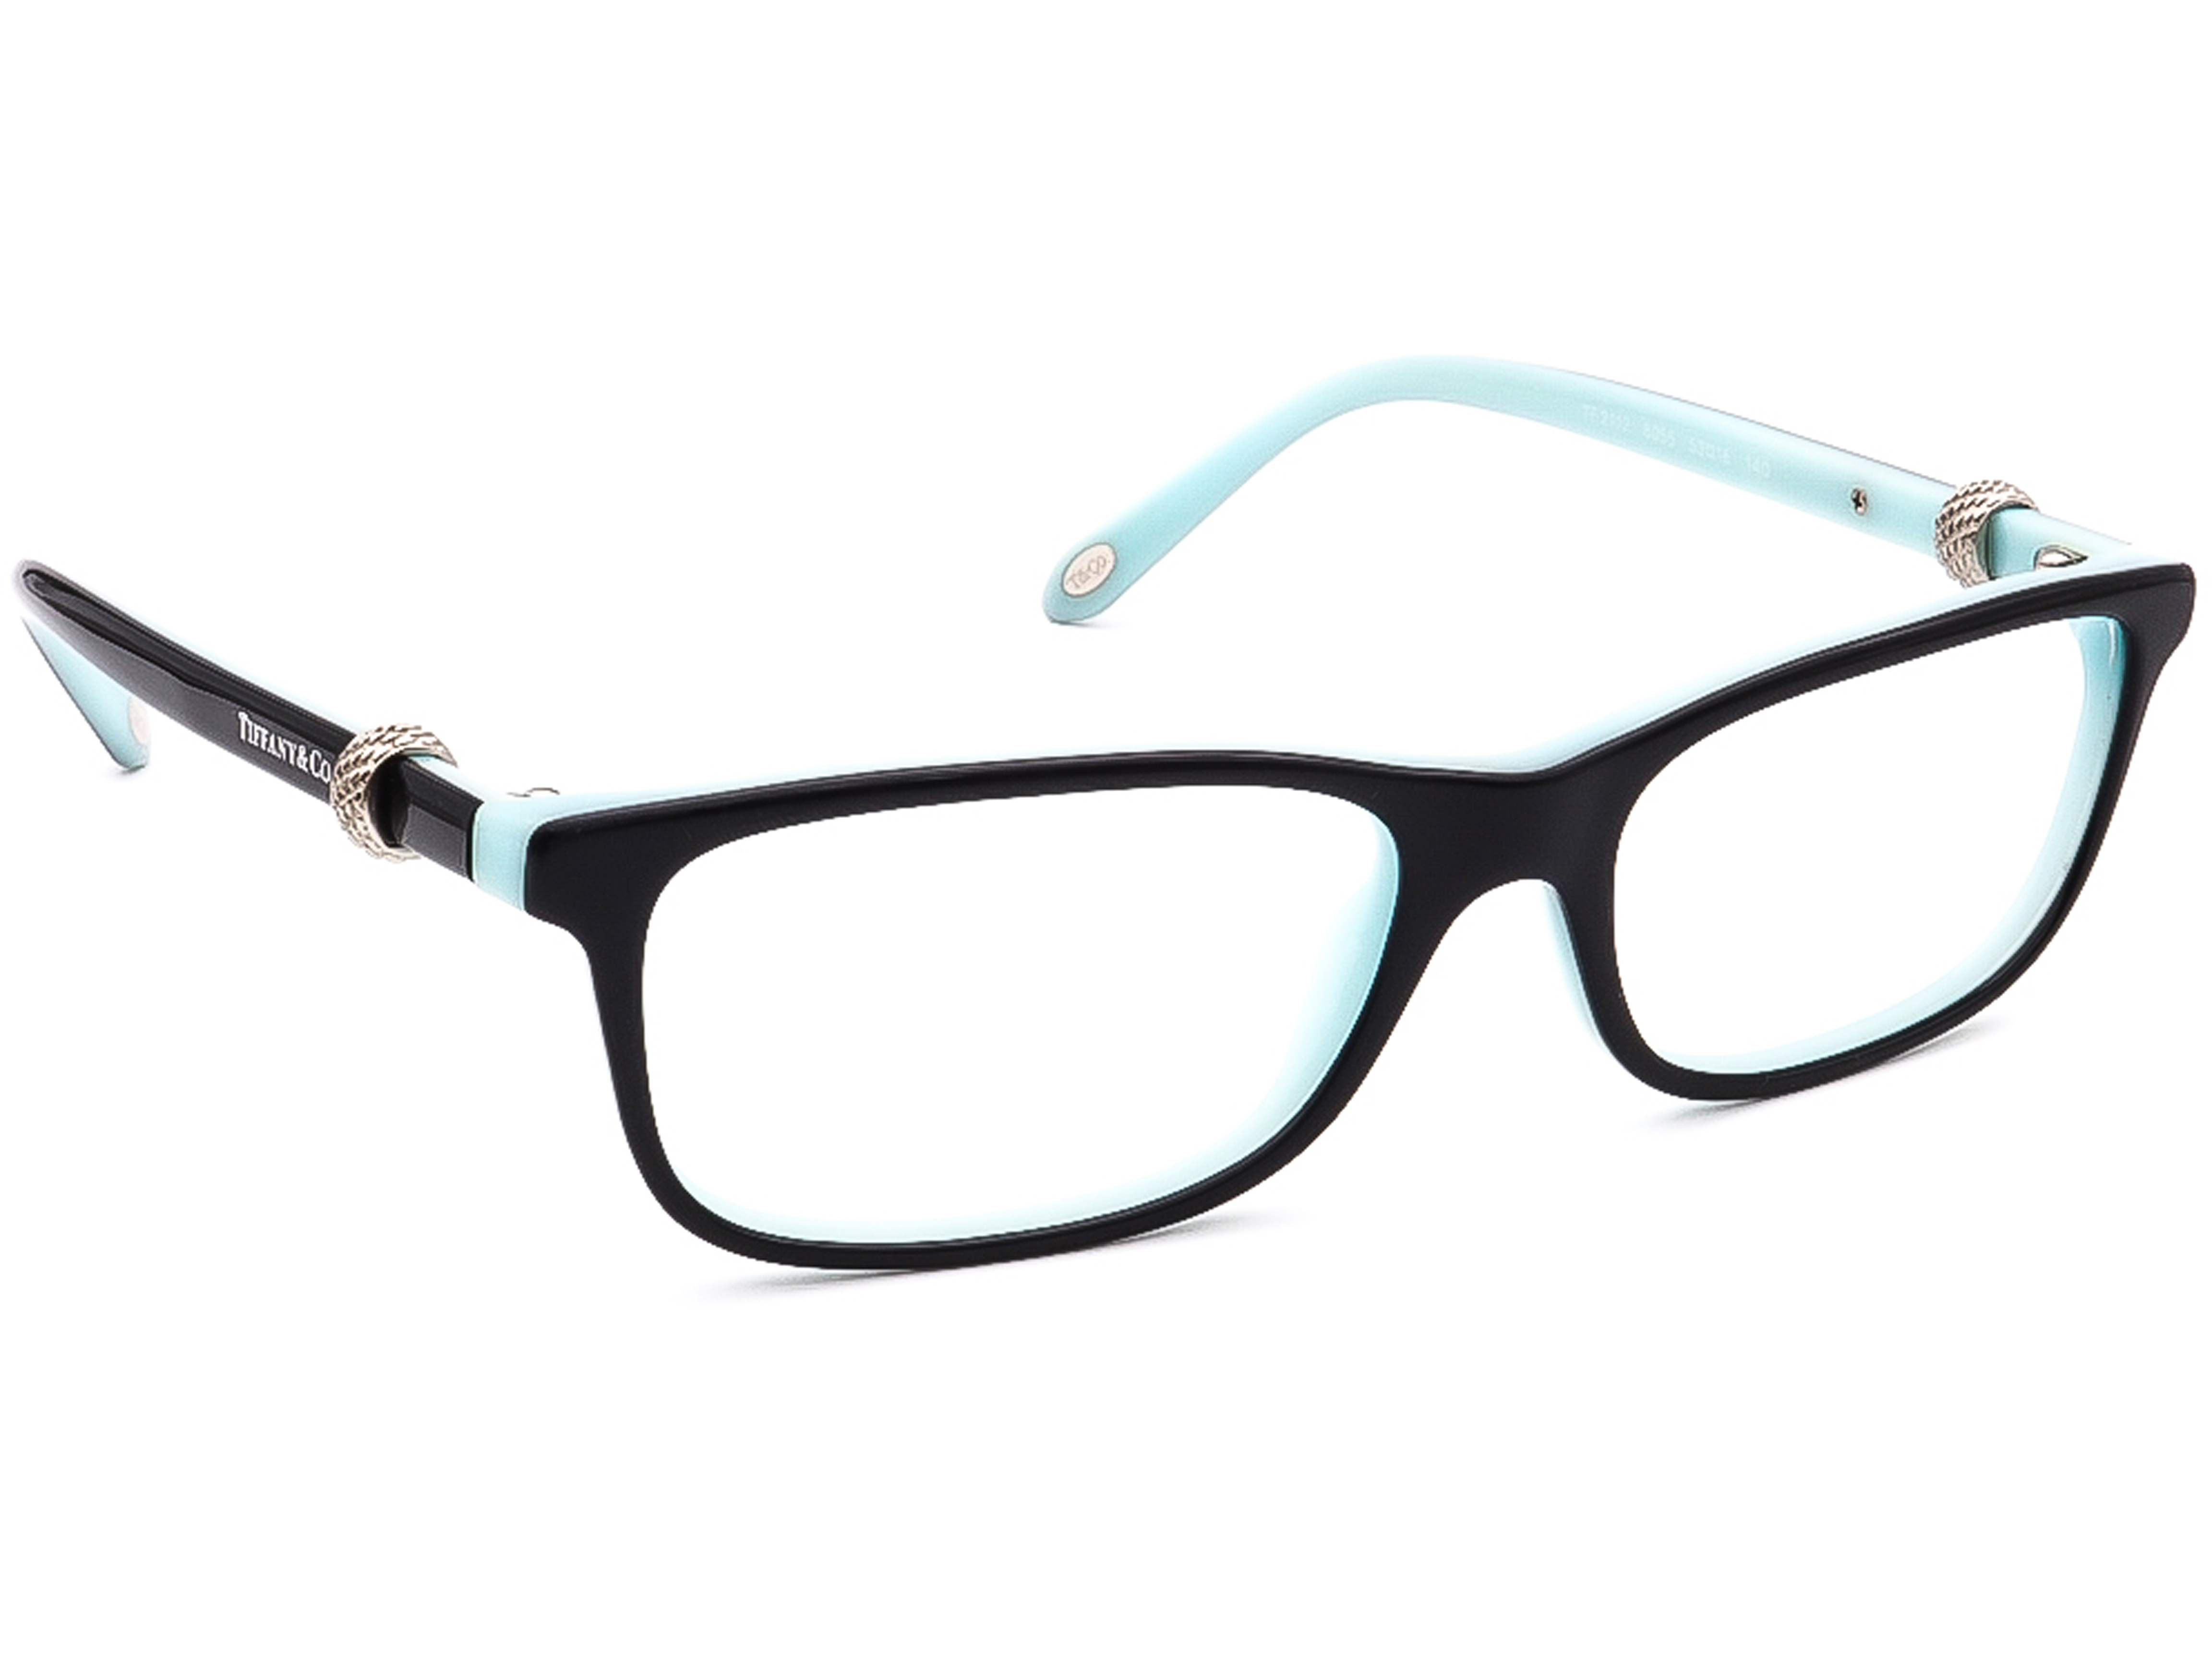 Tiffany & Co. TF 2112 8055 Eyeglasses